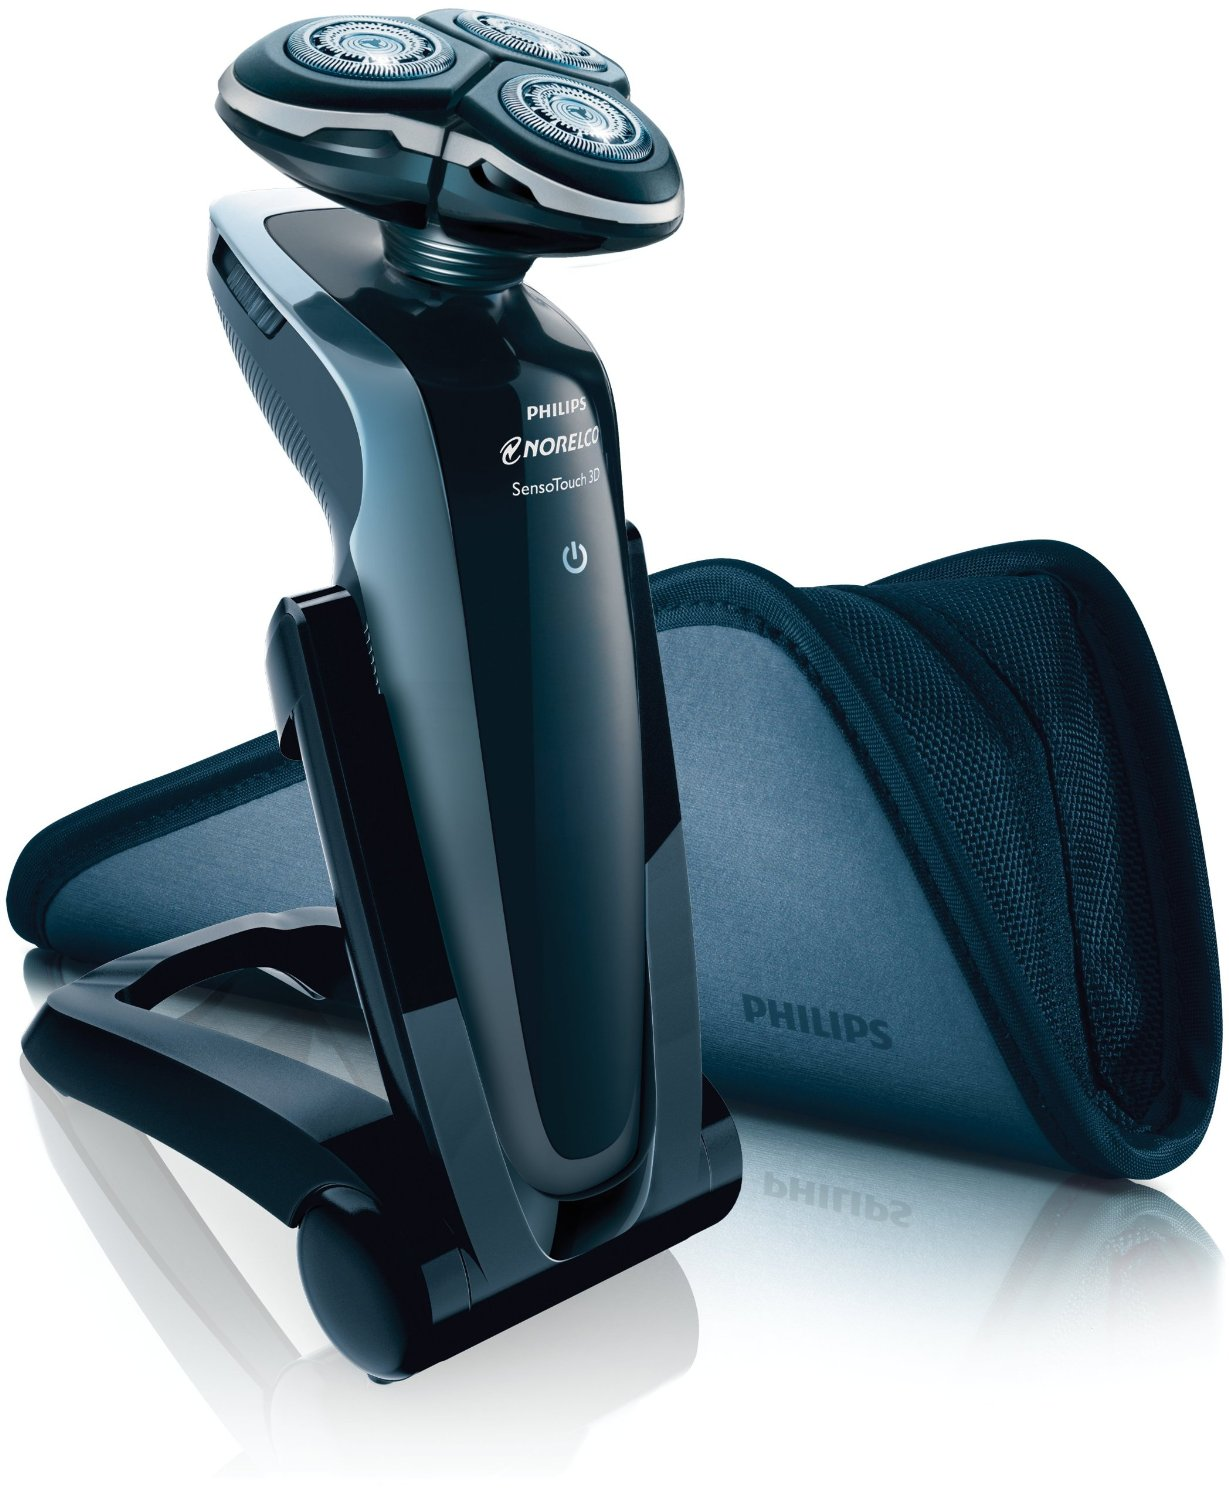 Philips Norelco Shaver 8800 1